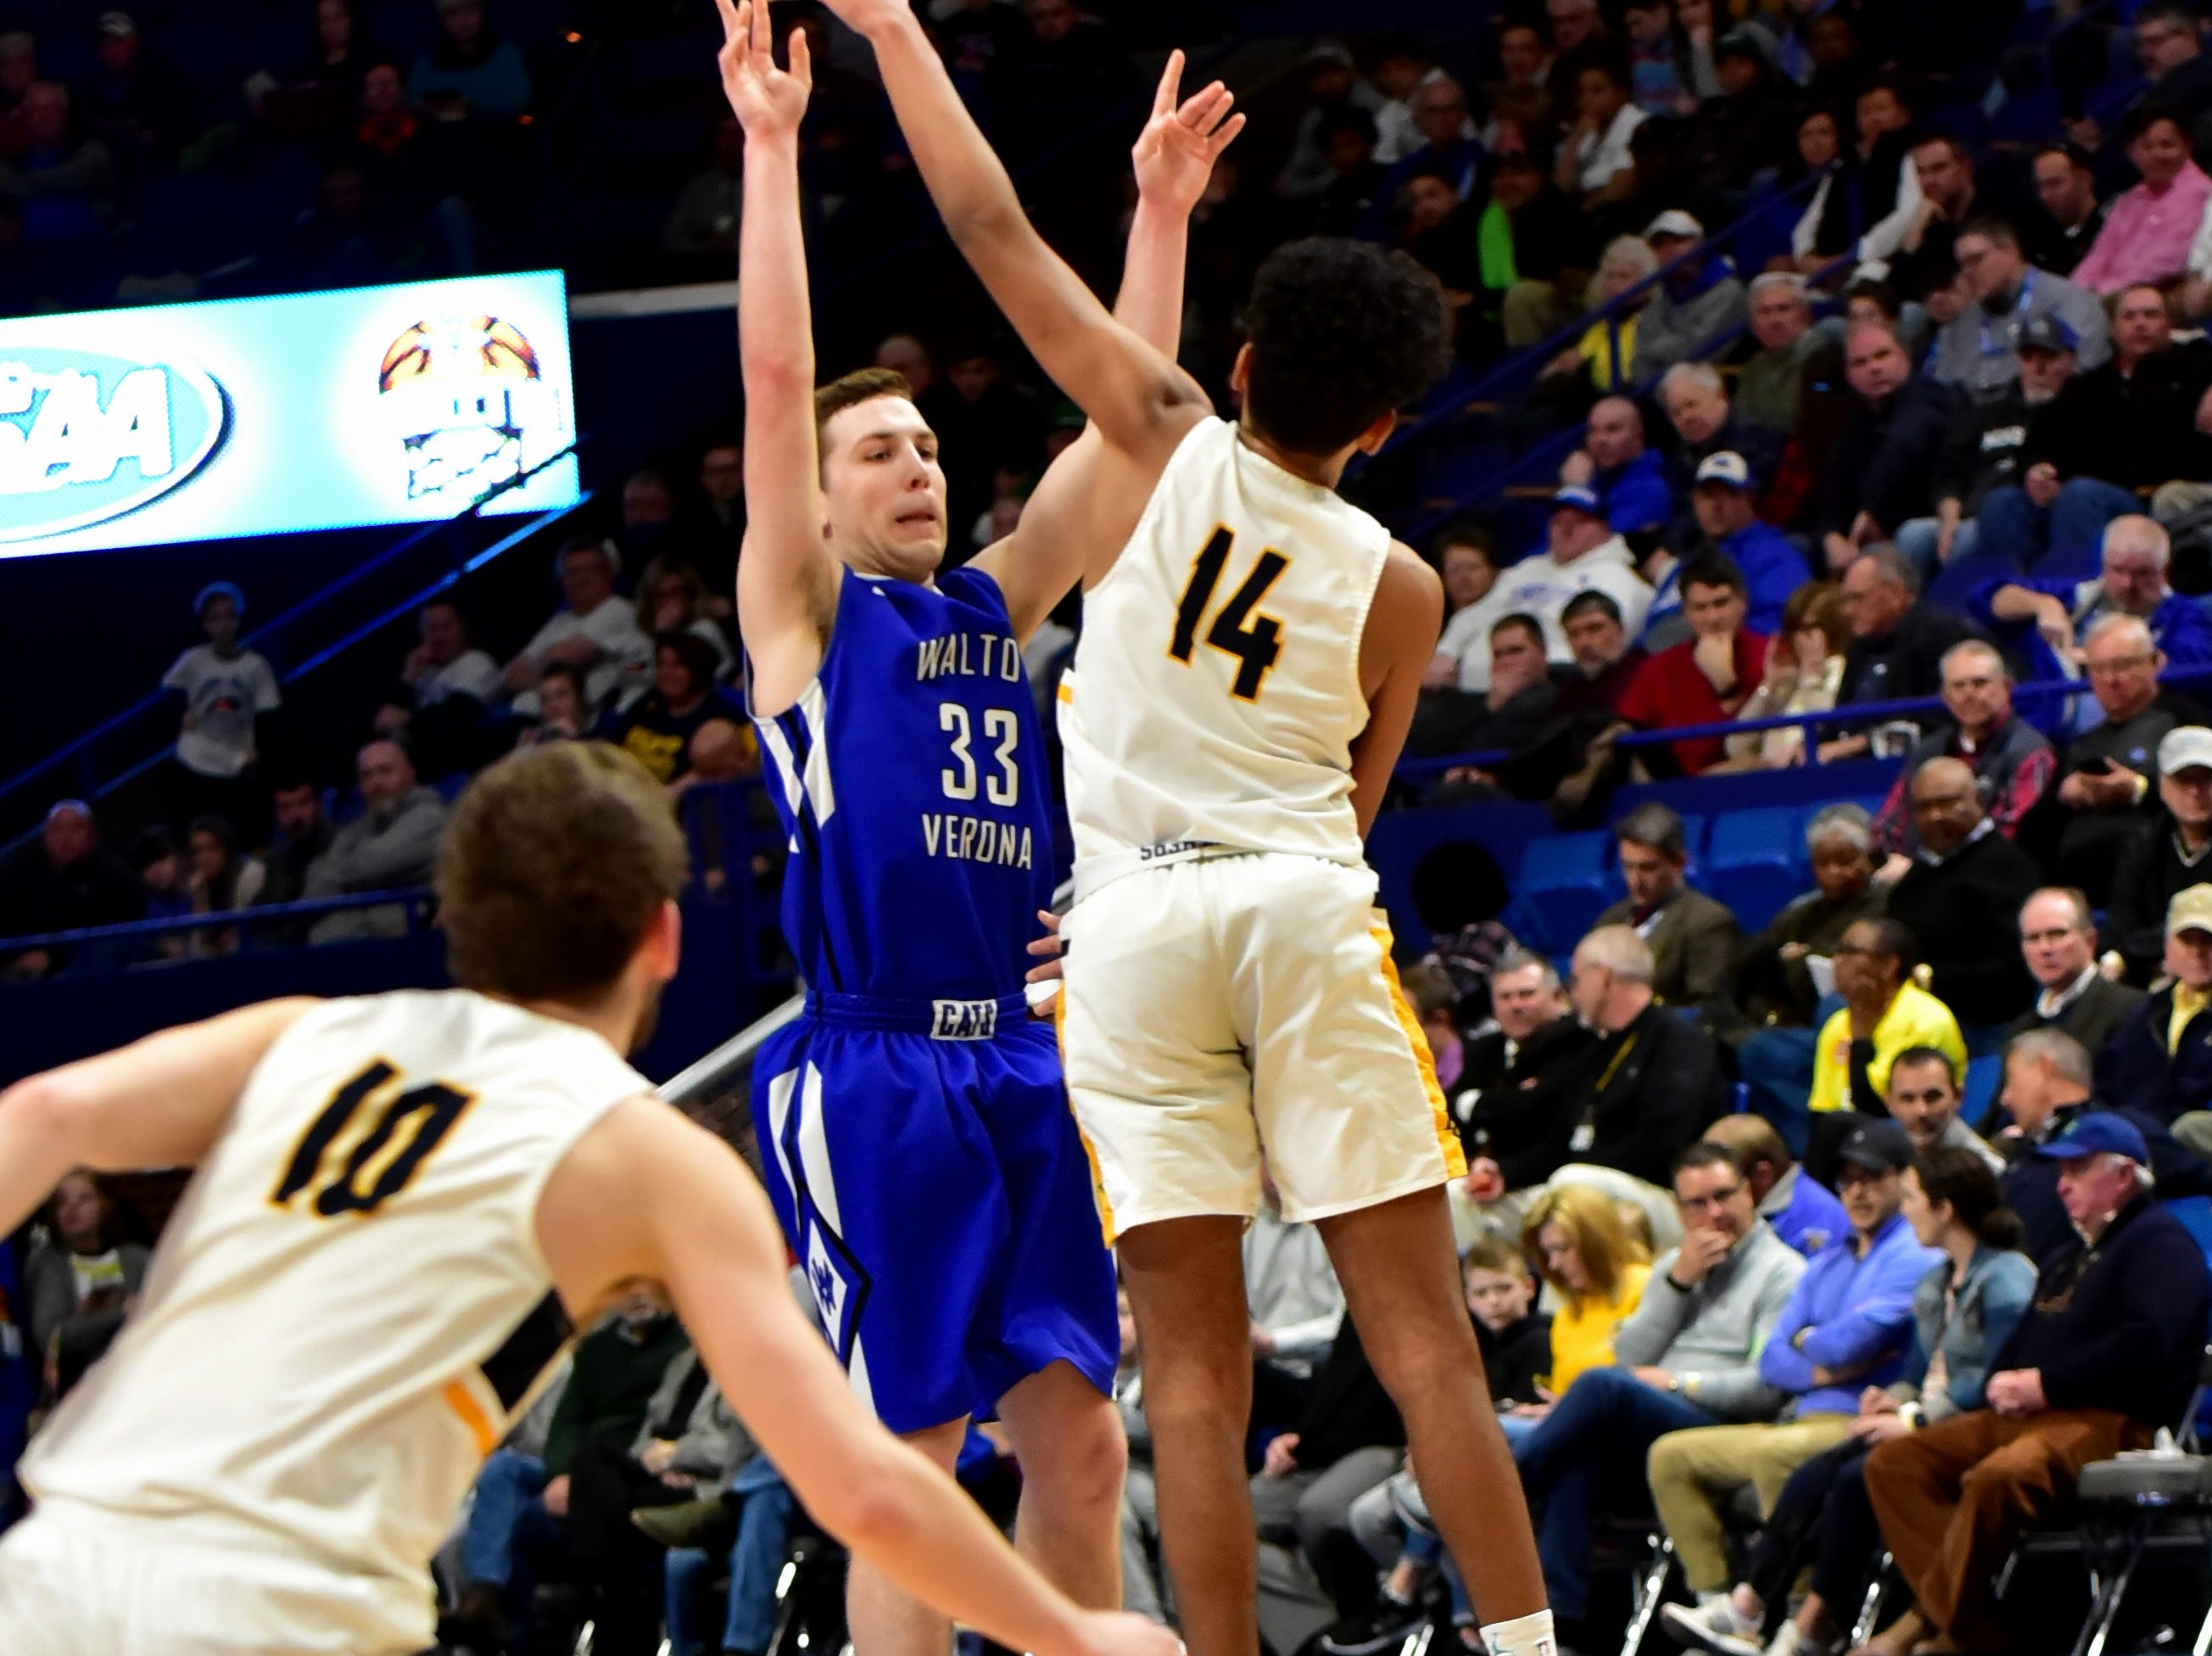 Grant Grubbs powers home a long range three pointer for Walton Verona at the KHSAA Sweet 16 Tournament at Rupp Arena in Lexington, KY, March 6, 2019